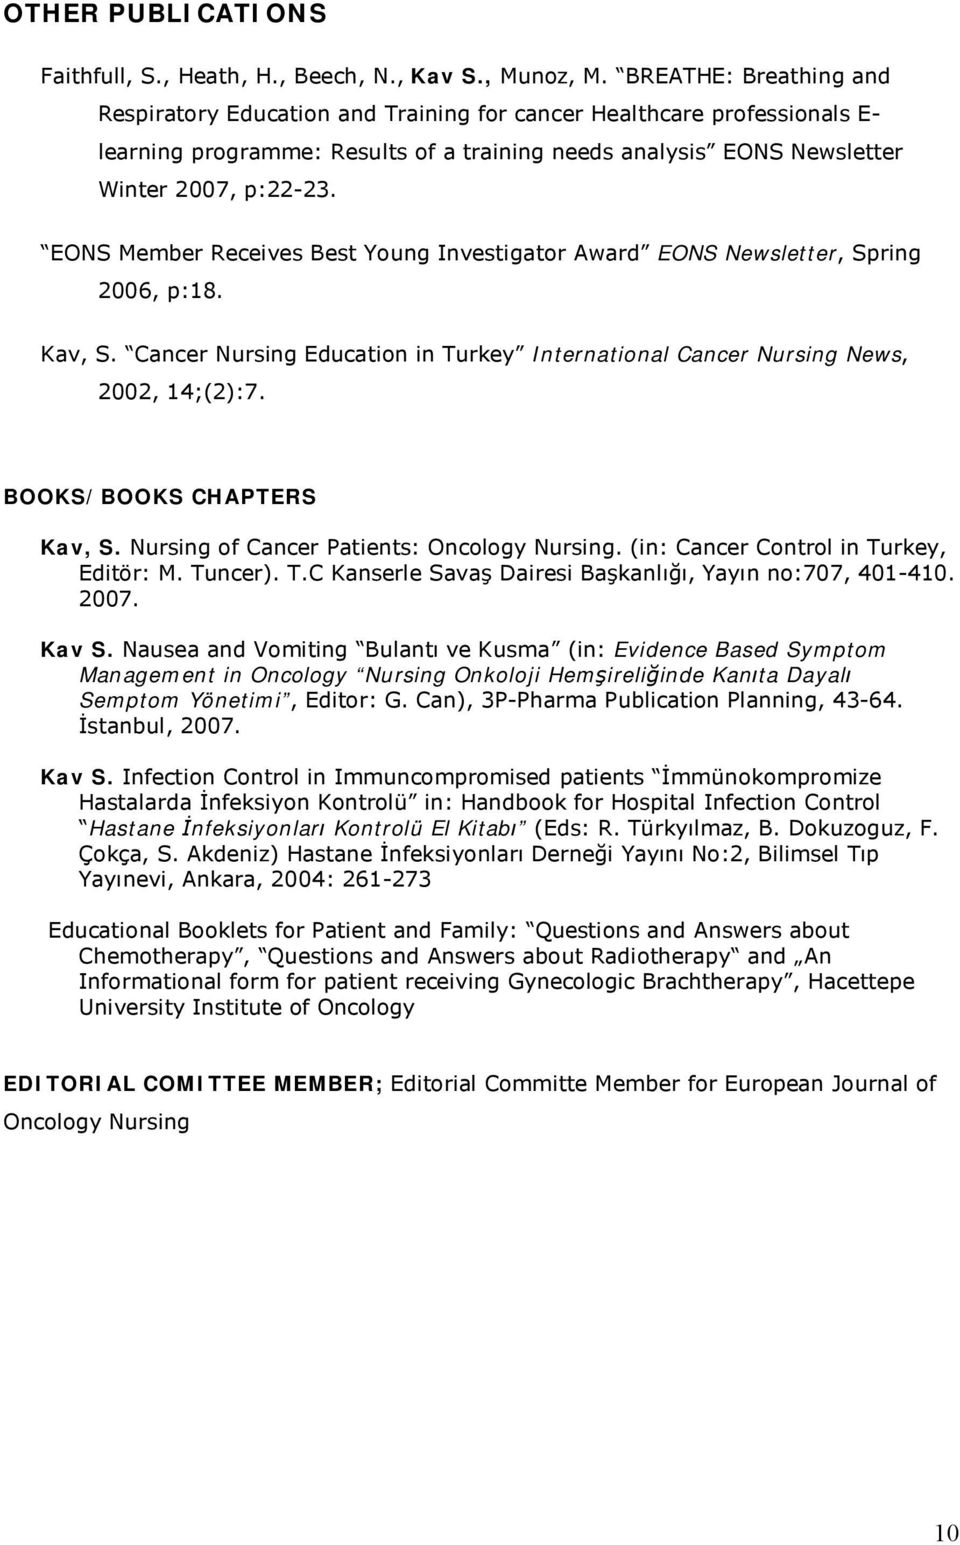 EONS Member Receives Best Young Investigator Award EONS Newsletter, Spring 2006, p:18. Kav, S. Cancer Nursing Education in Turkey International Cancer Nursing News, 2002, 14;(2):7.